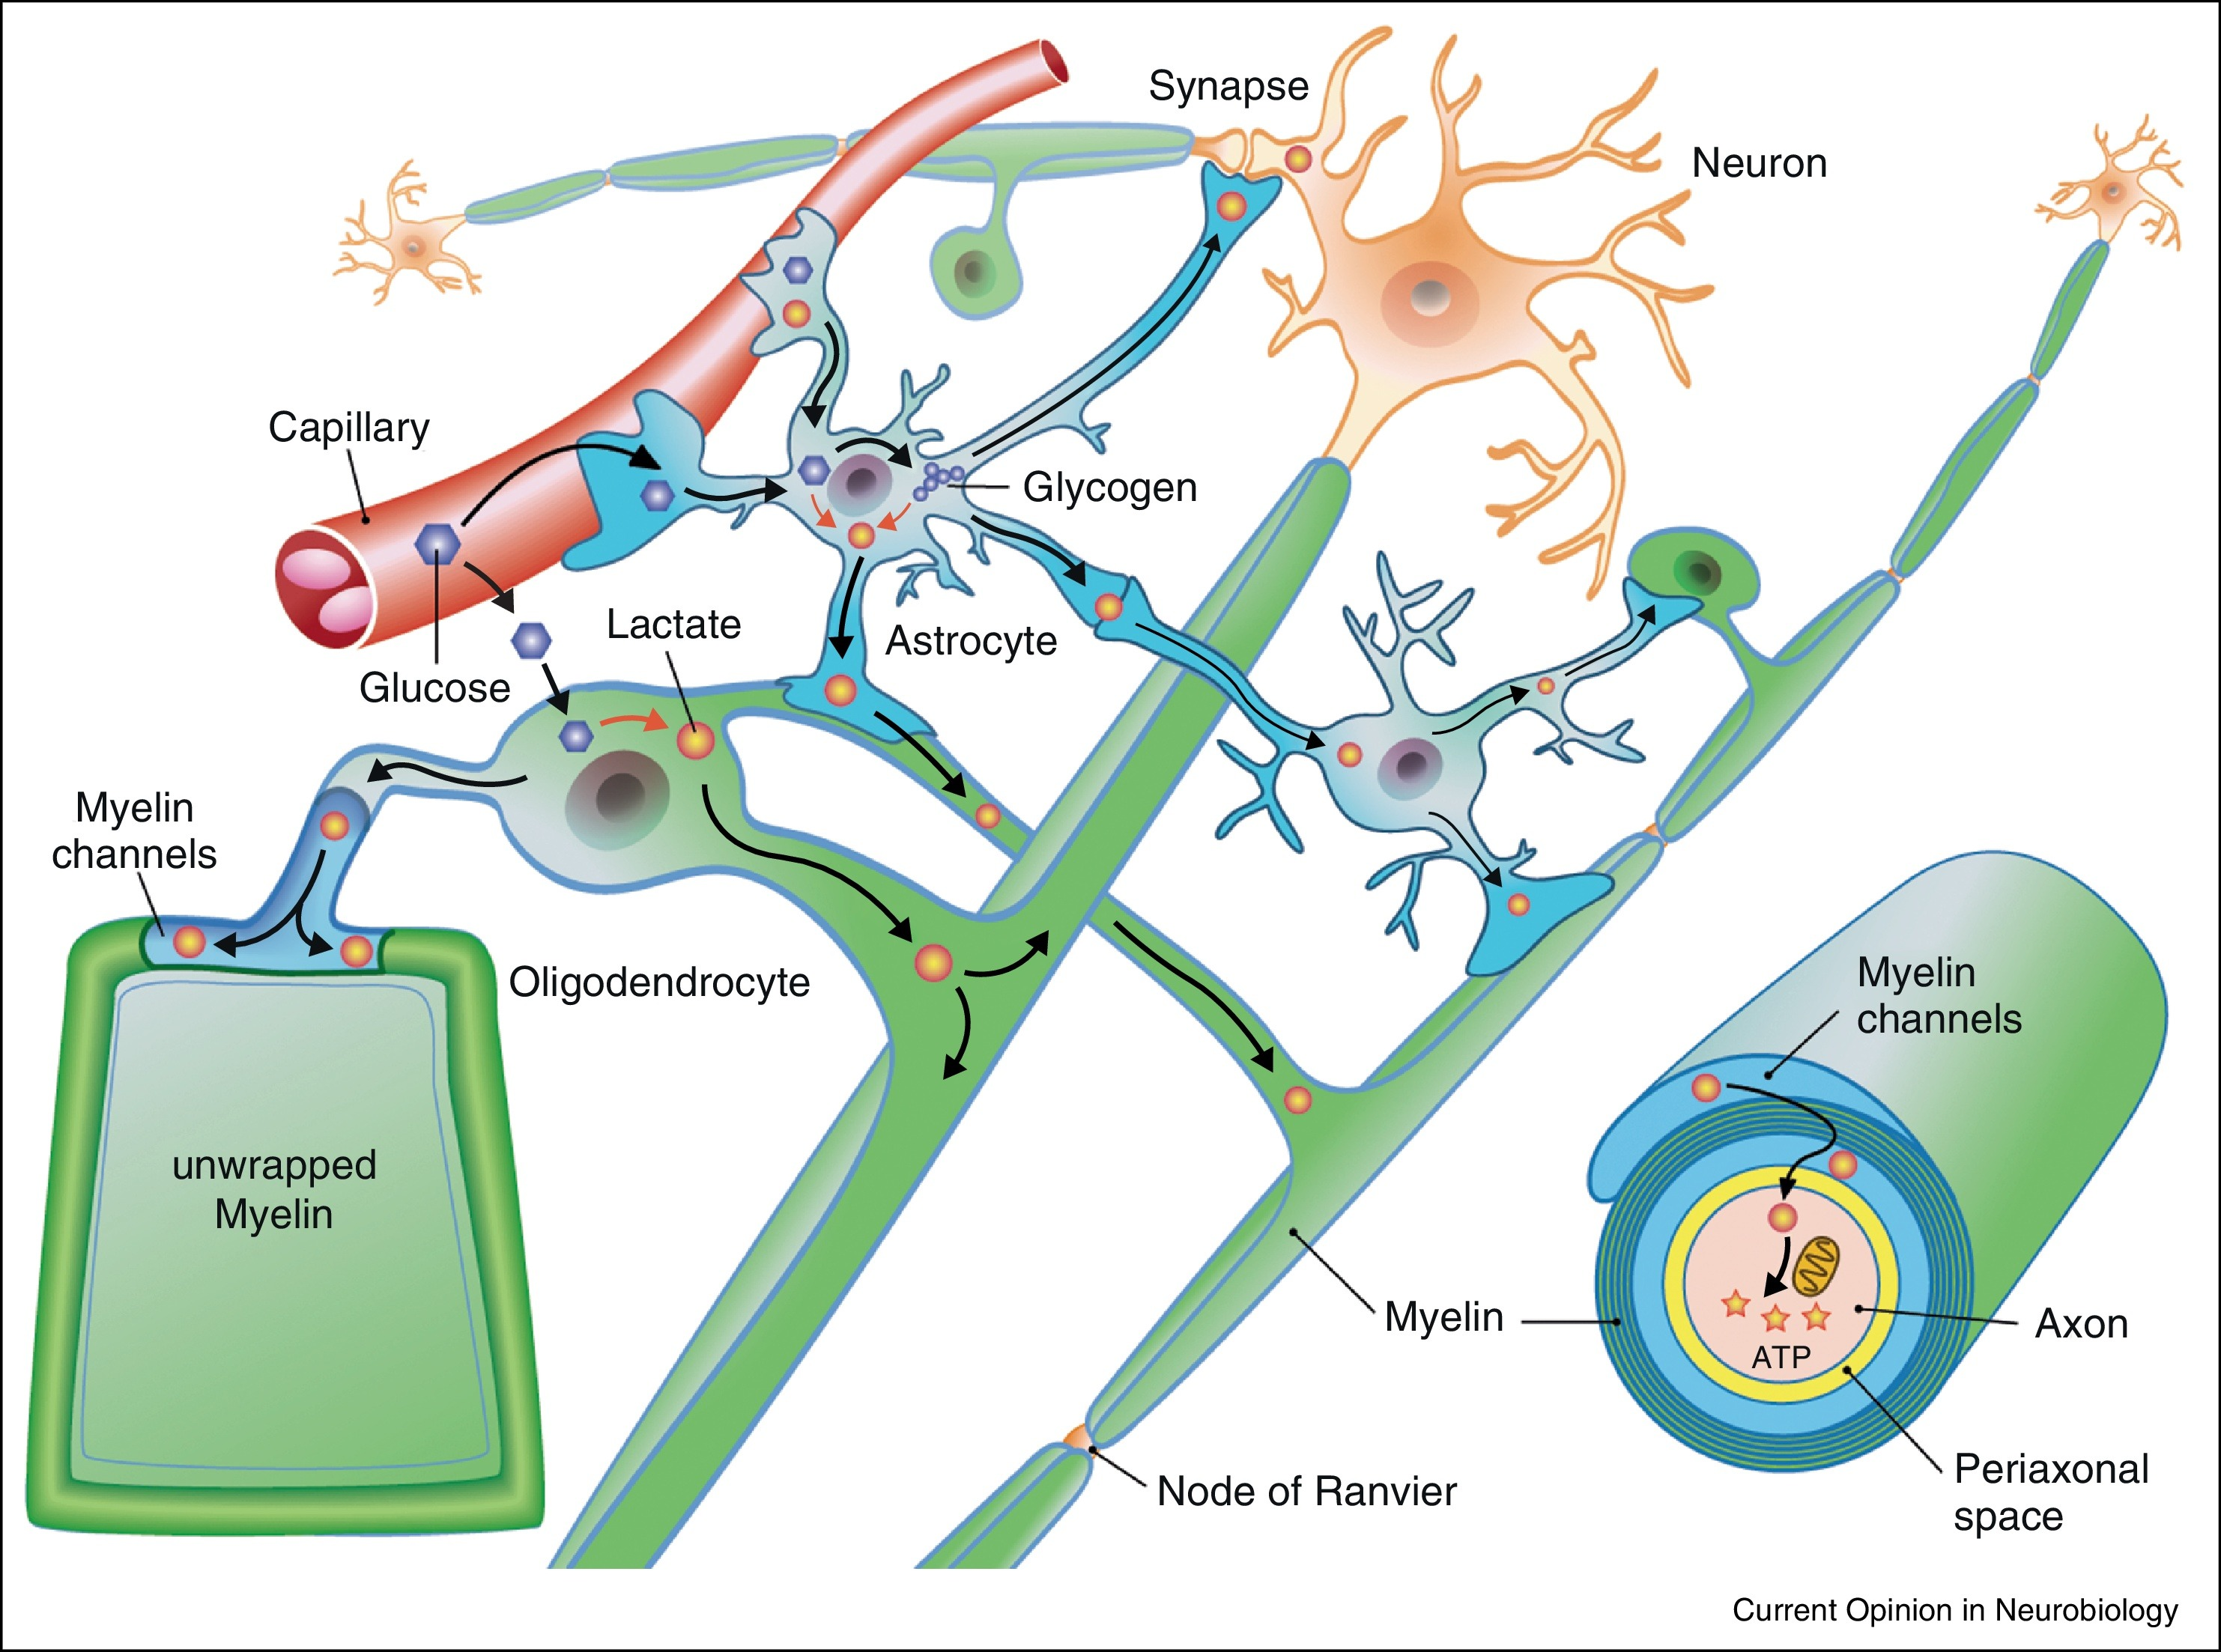 Uzh experimental imaging and neuroenergetics neuron glia scheme of neuron glia interactions and metabolic support to neuronal compartments myelinated axons may receive lactate from glycolytic oligodendrocytes ccuart